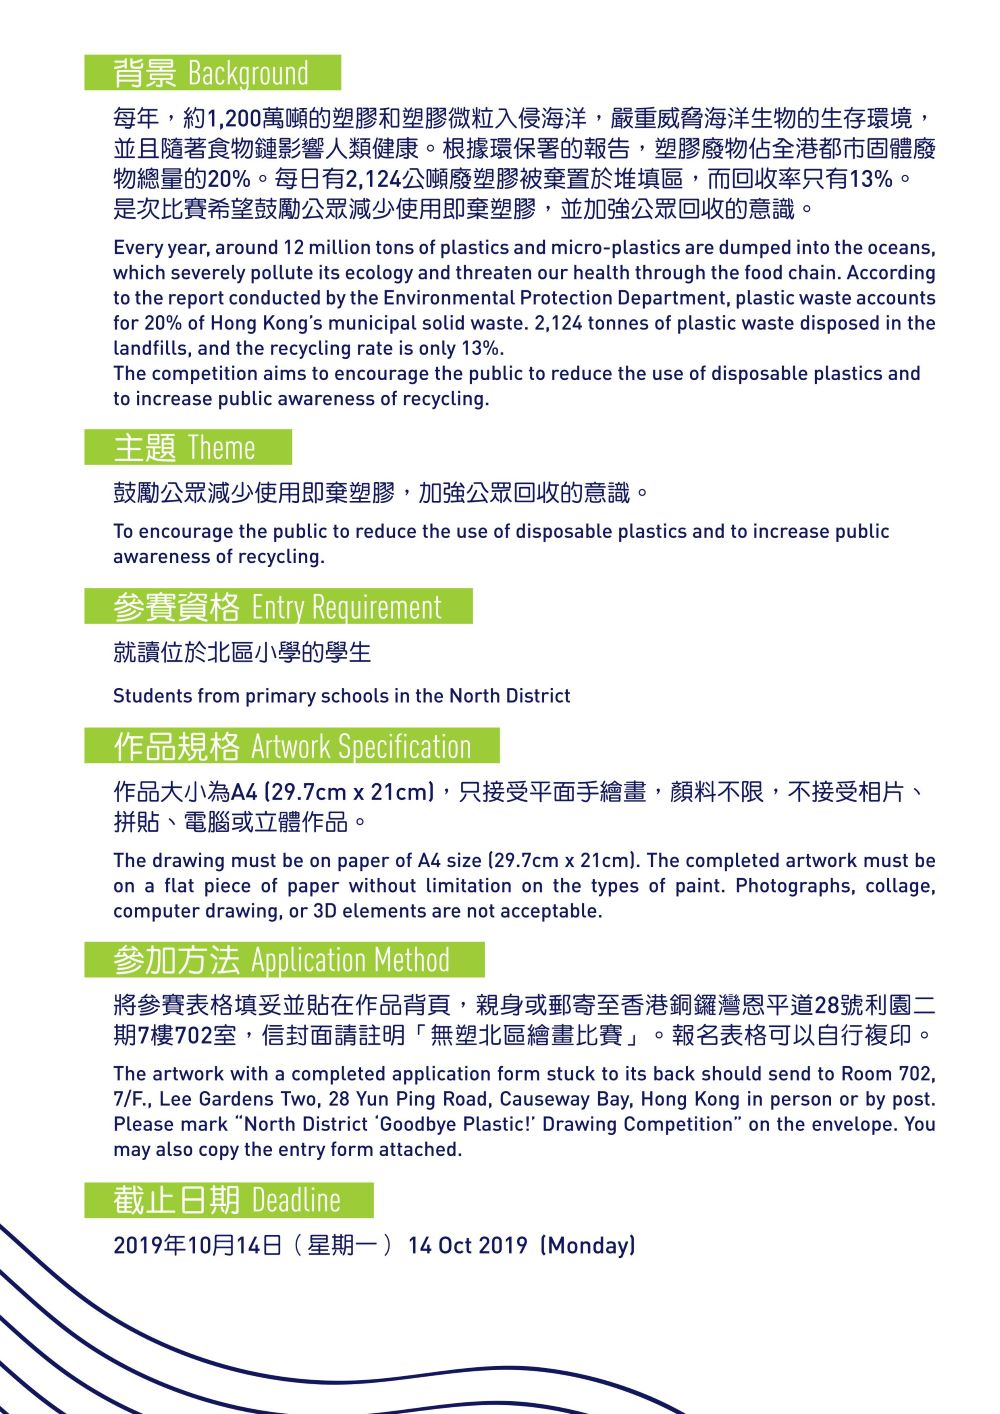 HK drawing competition 2